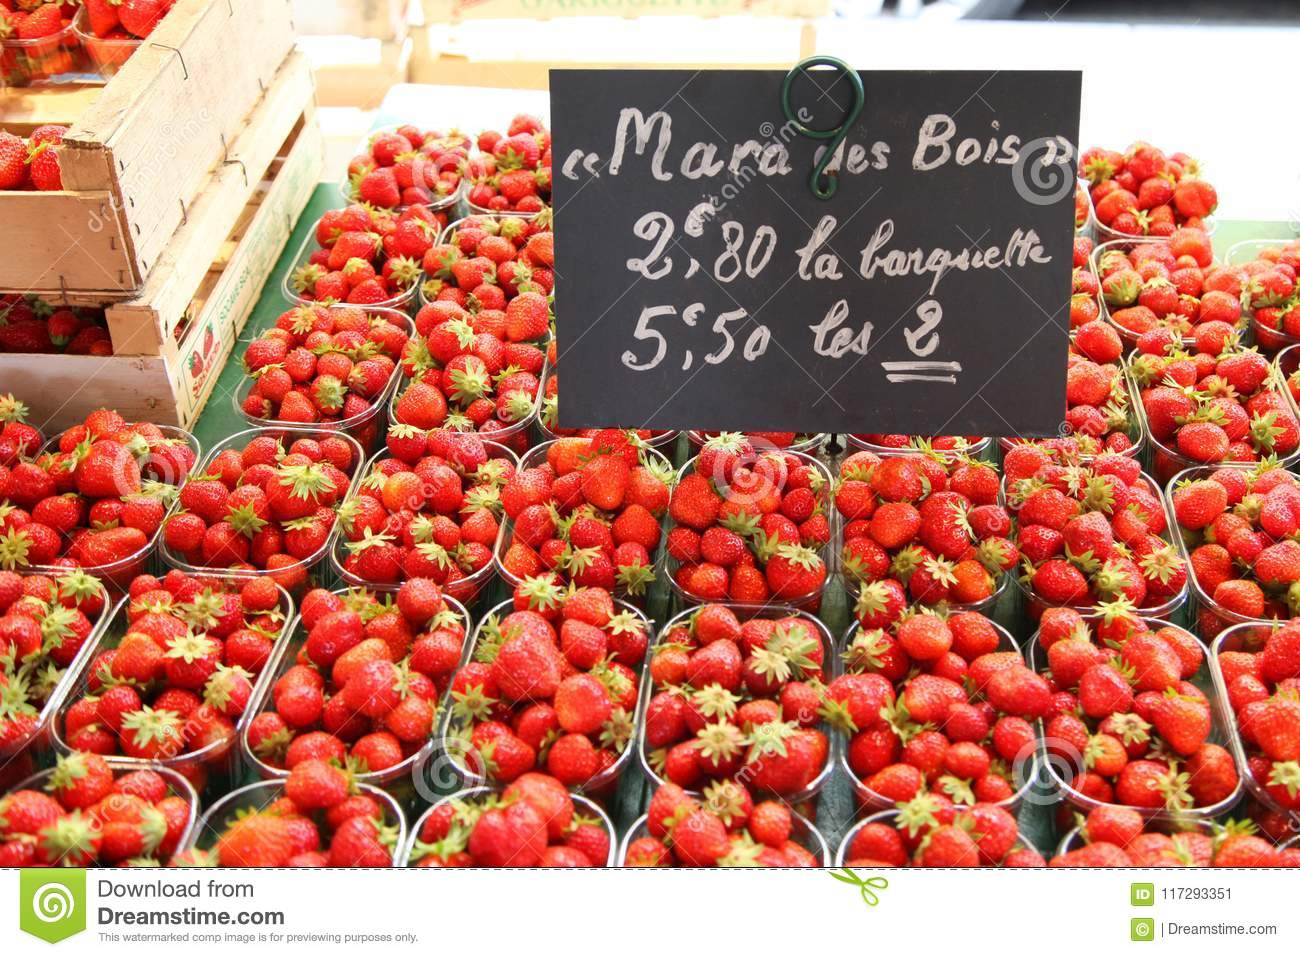 Fruit Market In Normandy France Strawberry Stock Image Image Of Berry Fruits 117293351